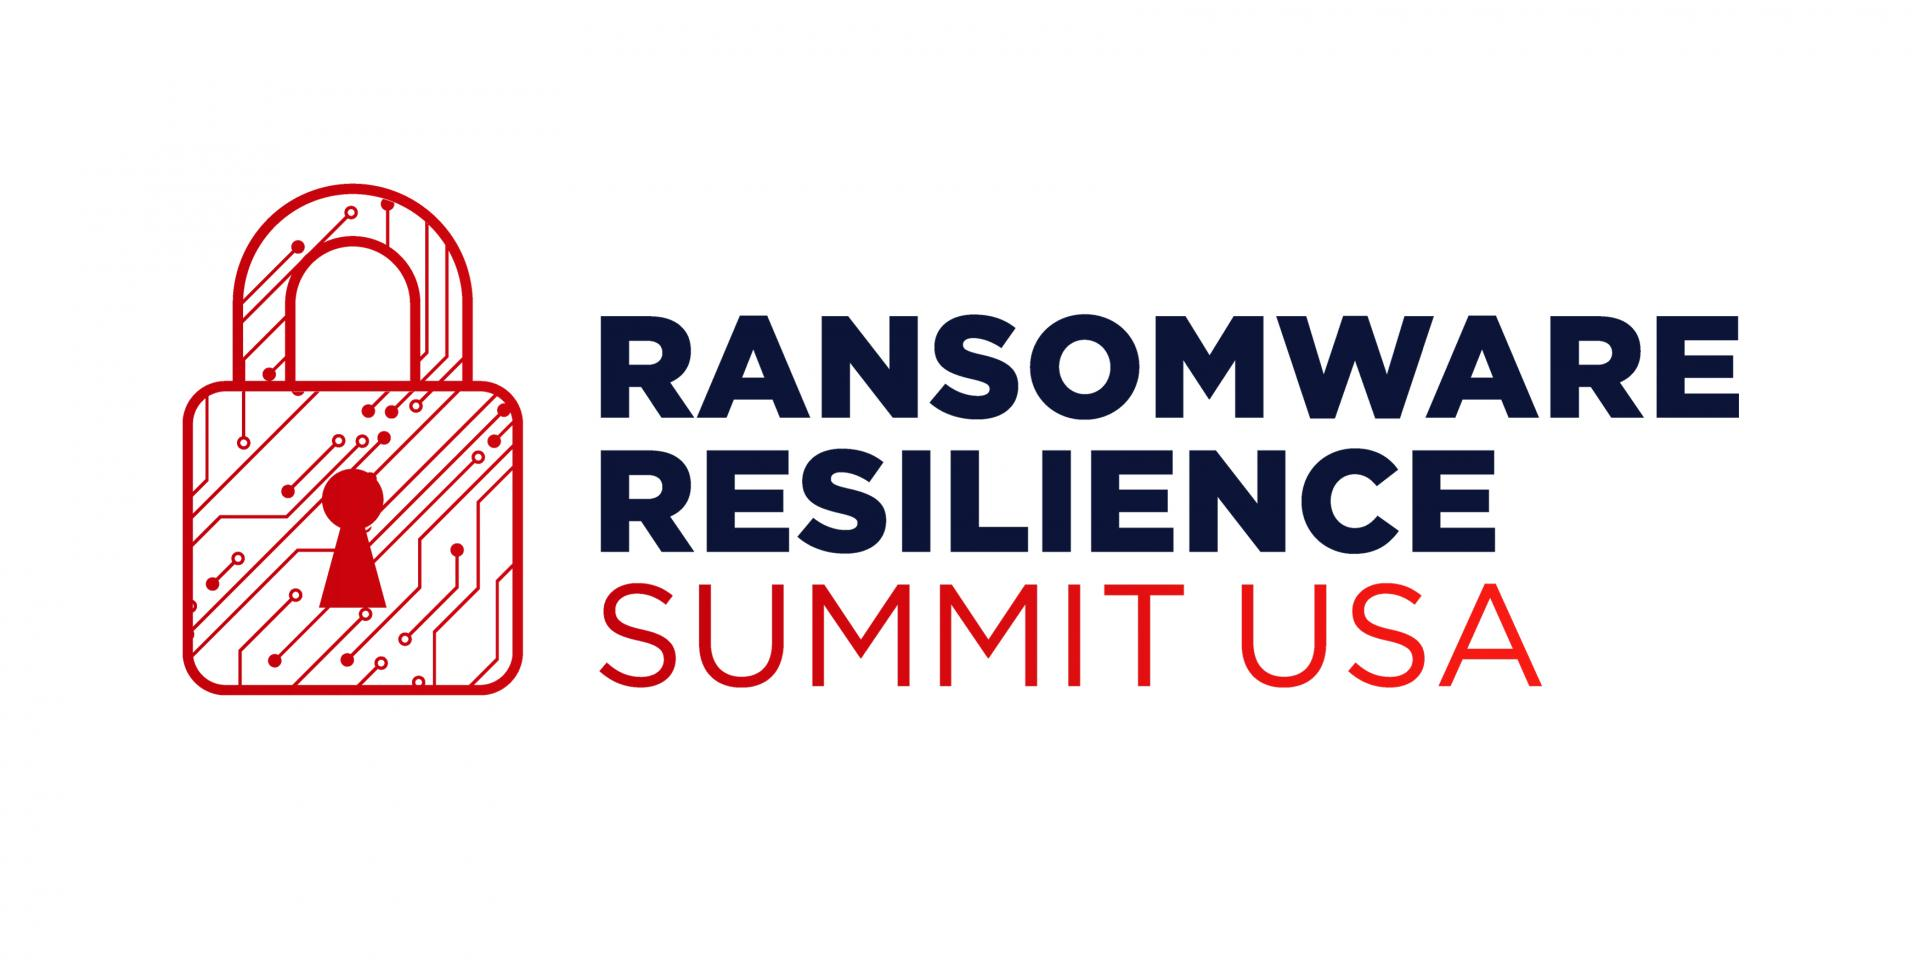 Ransomware Resilience Summit USA